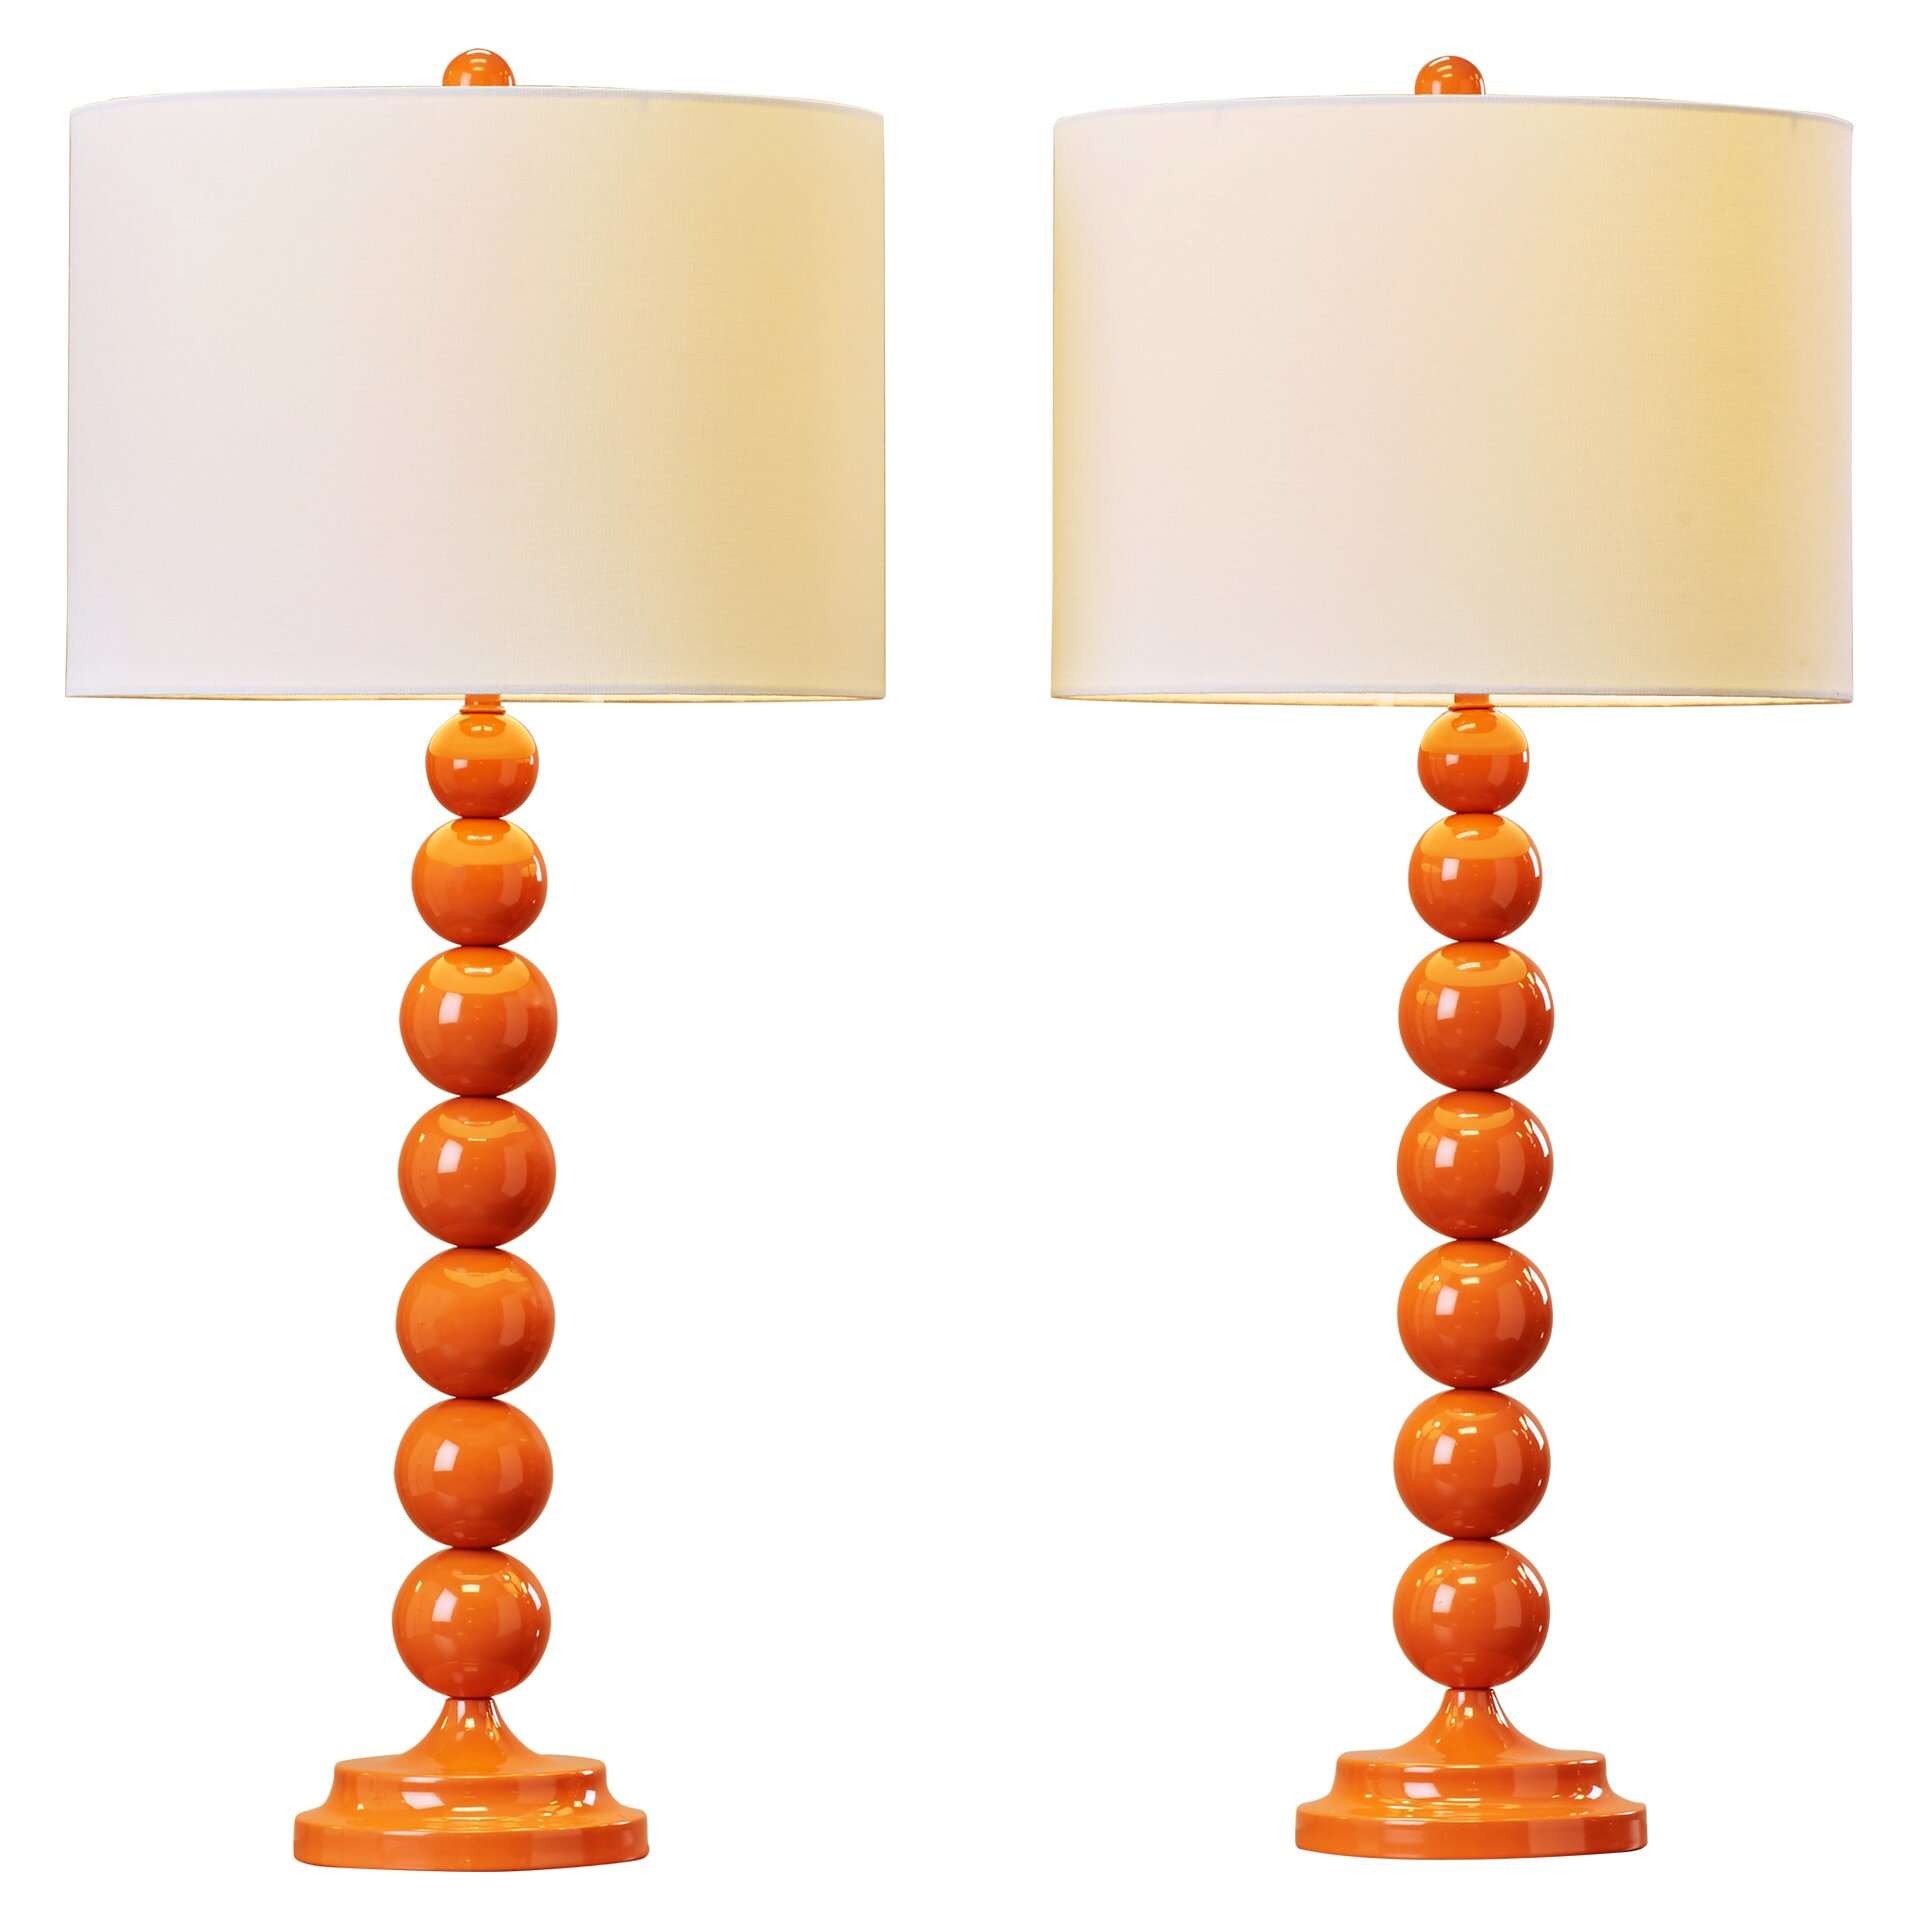 varick gallery oakwood 31 table lamps set of 2 reviews wayfair. Black Bedroom Furniture Sets. Home Design Ideas